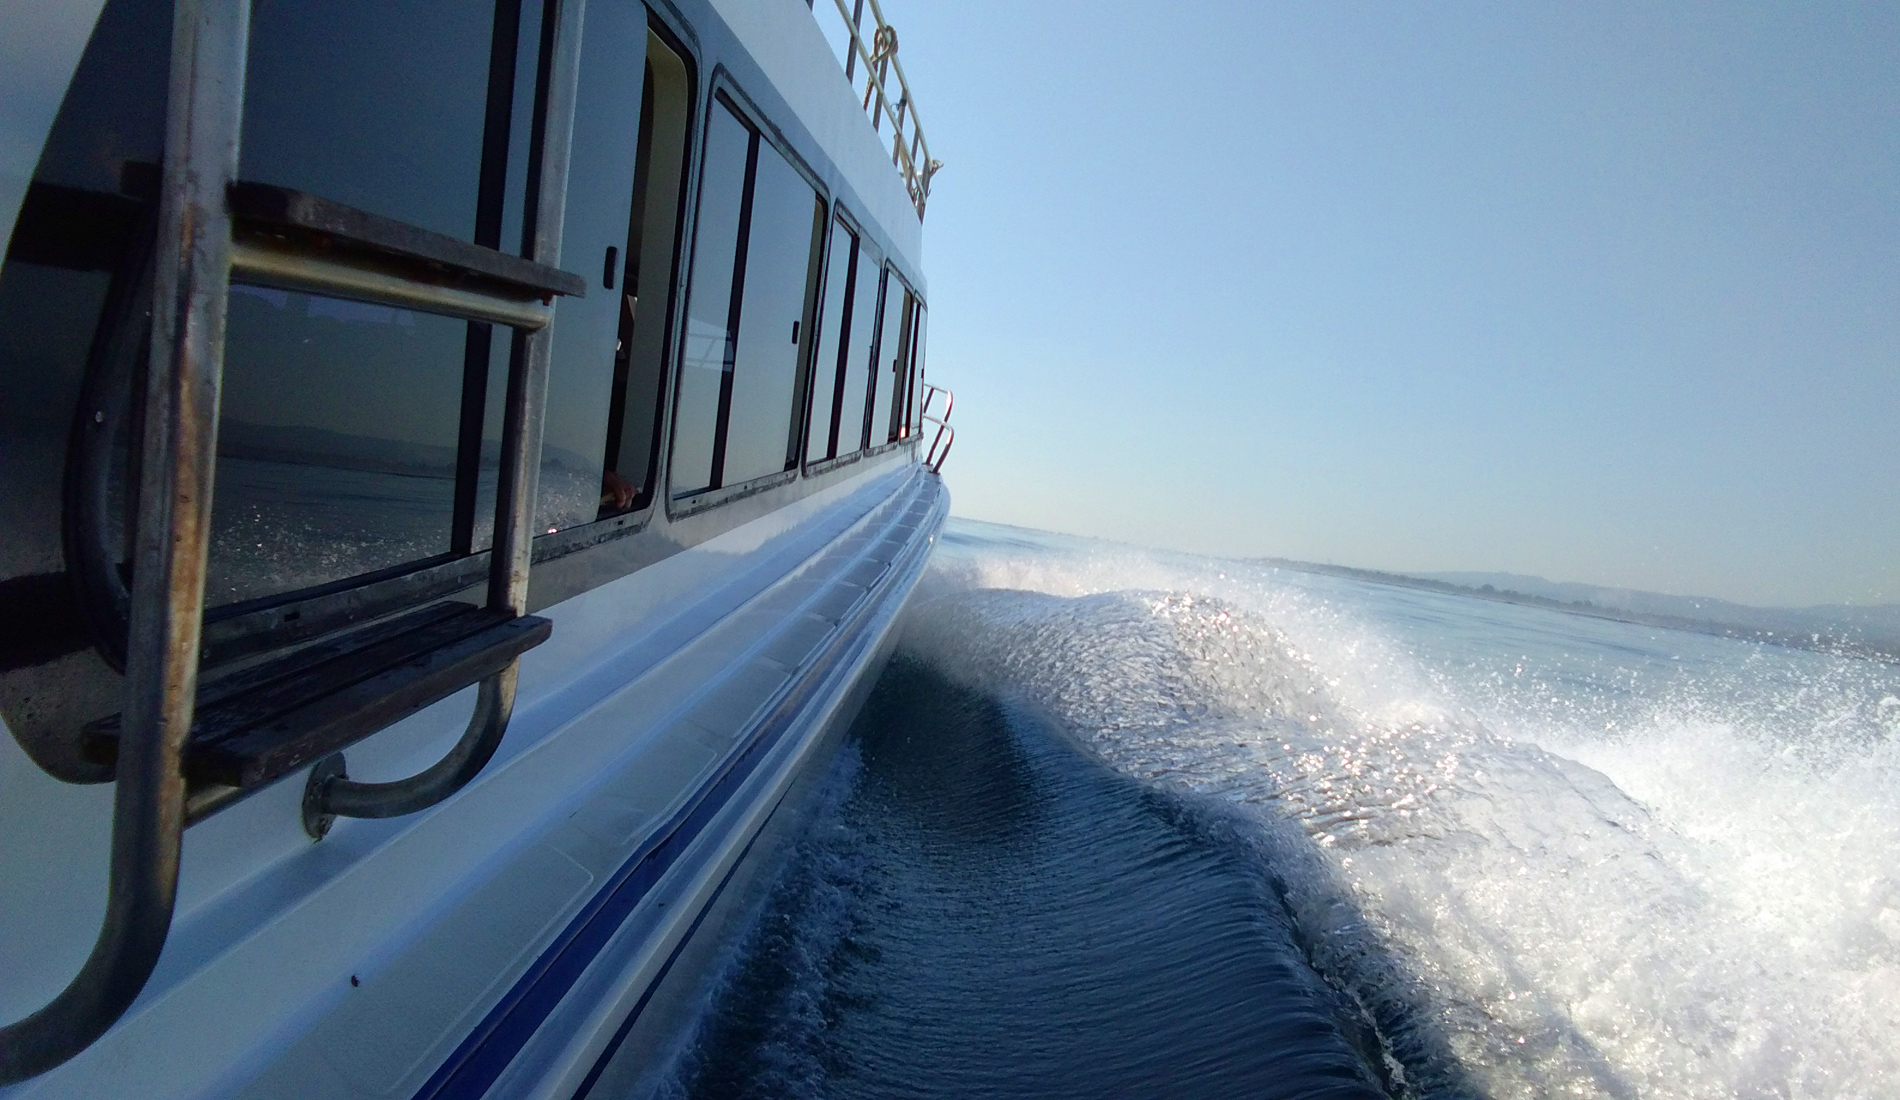 Fast Boat - Bali Private Transport and Tour in Bali